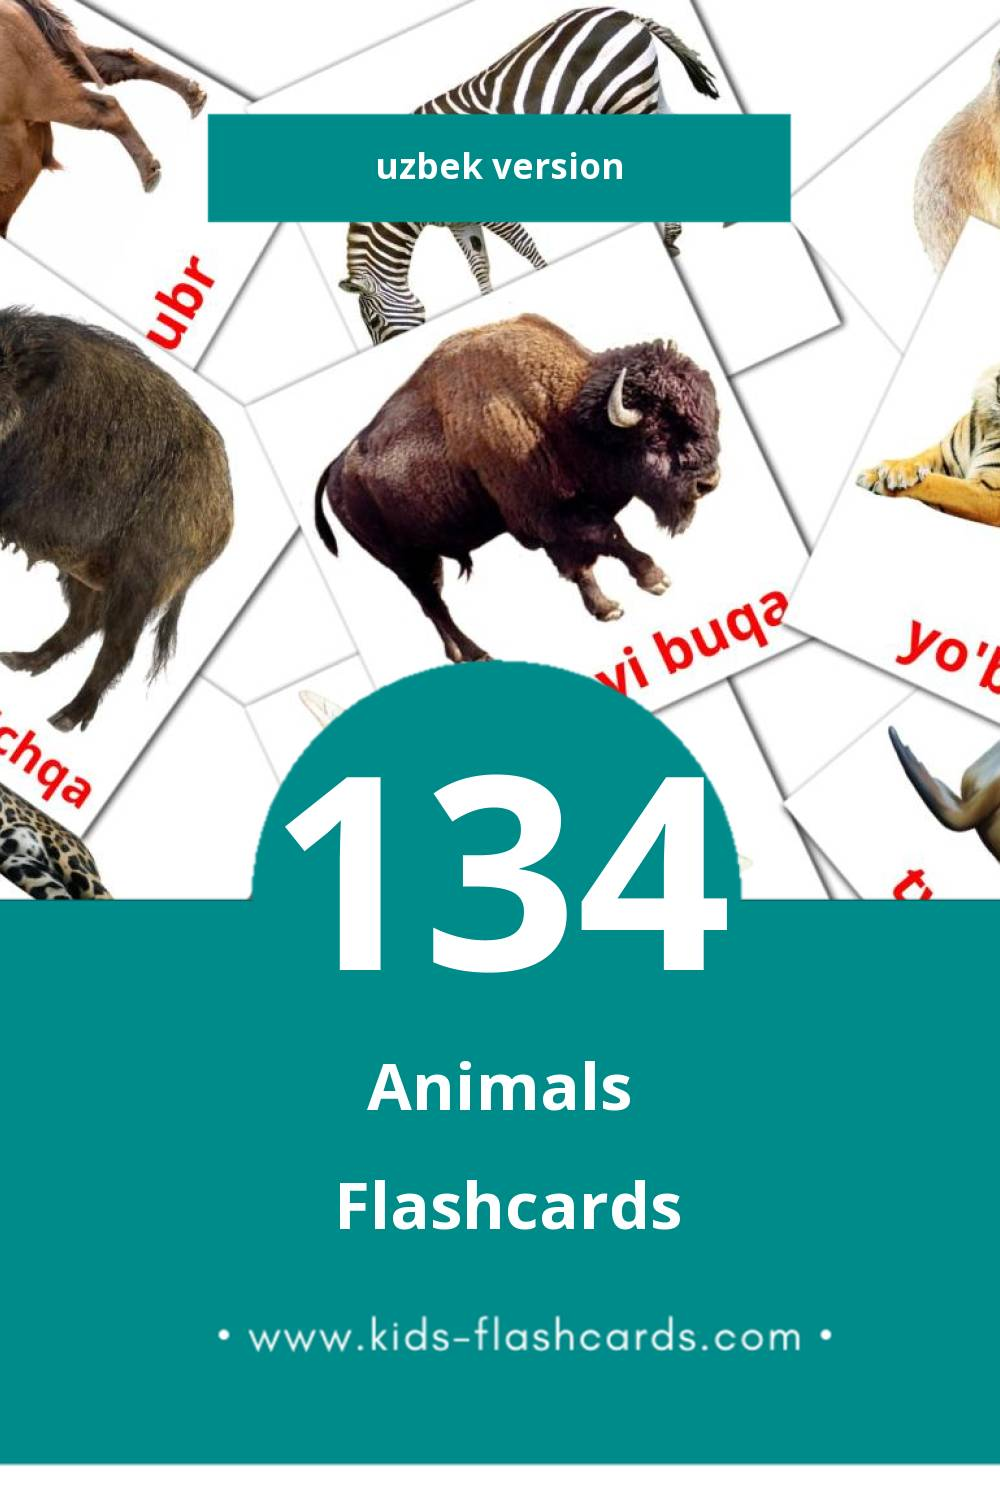 Visual Hayvonlar Flashcards for Toddlers (134 cards in Uzbek)